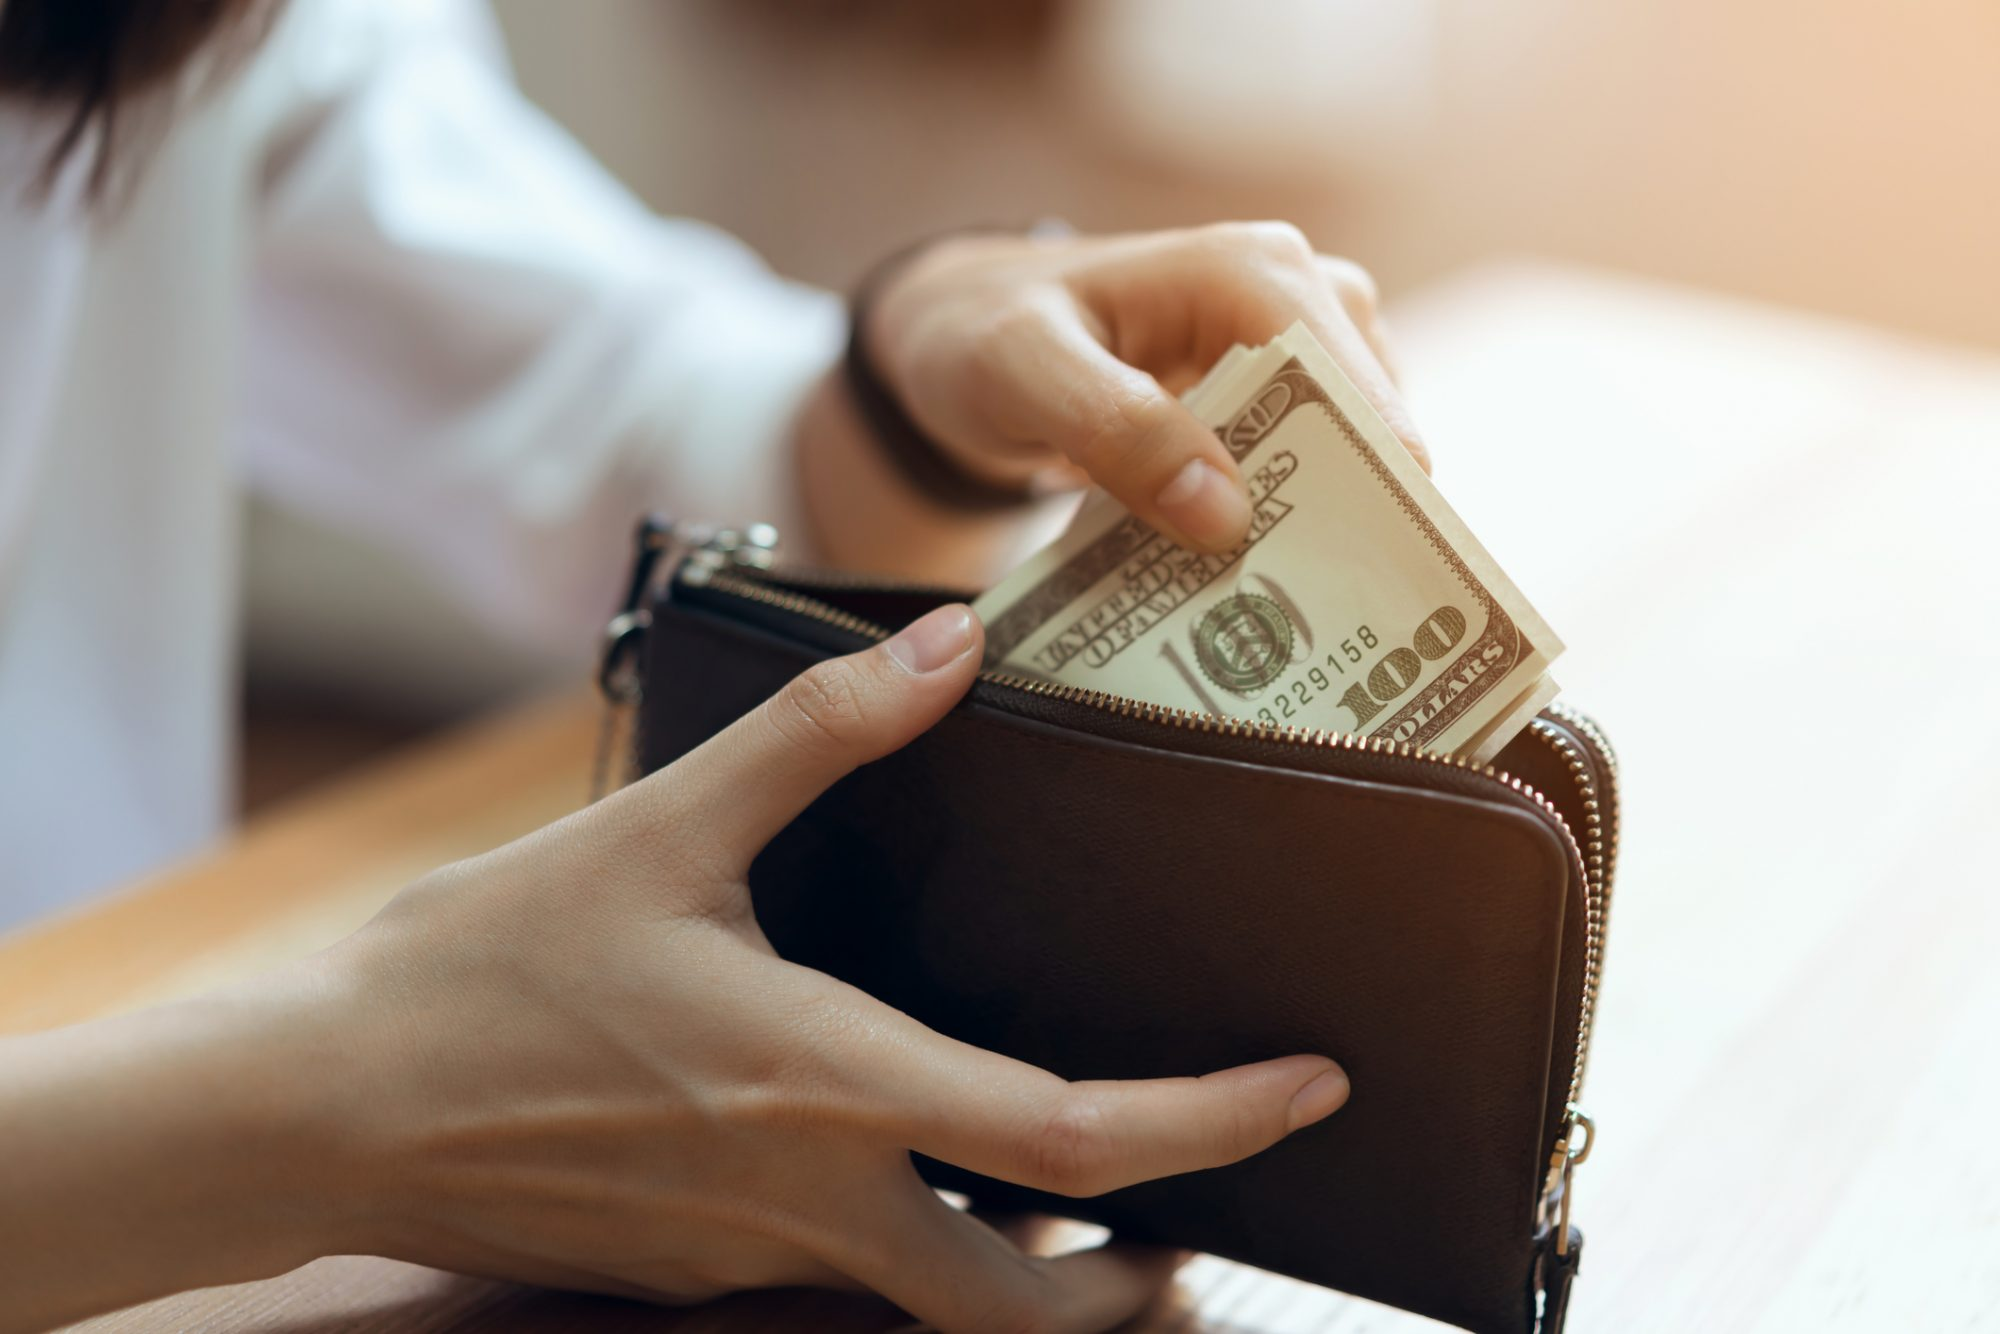 A woman puts money back into her wallet, after learning how to pay off debt.